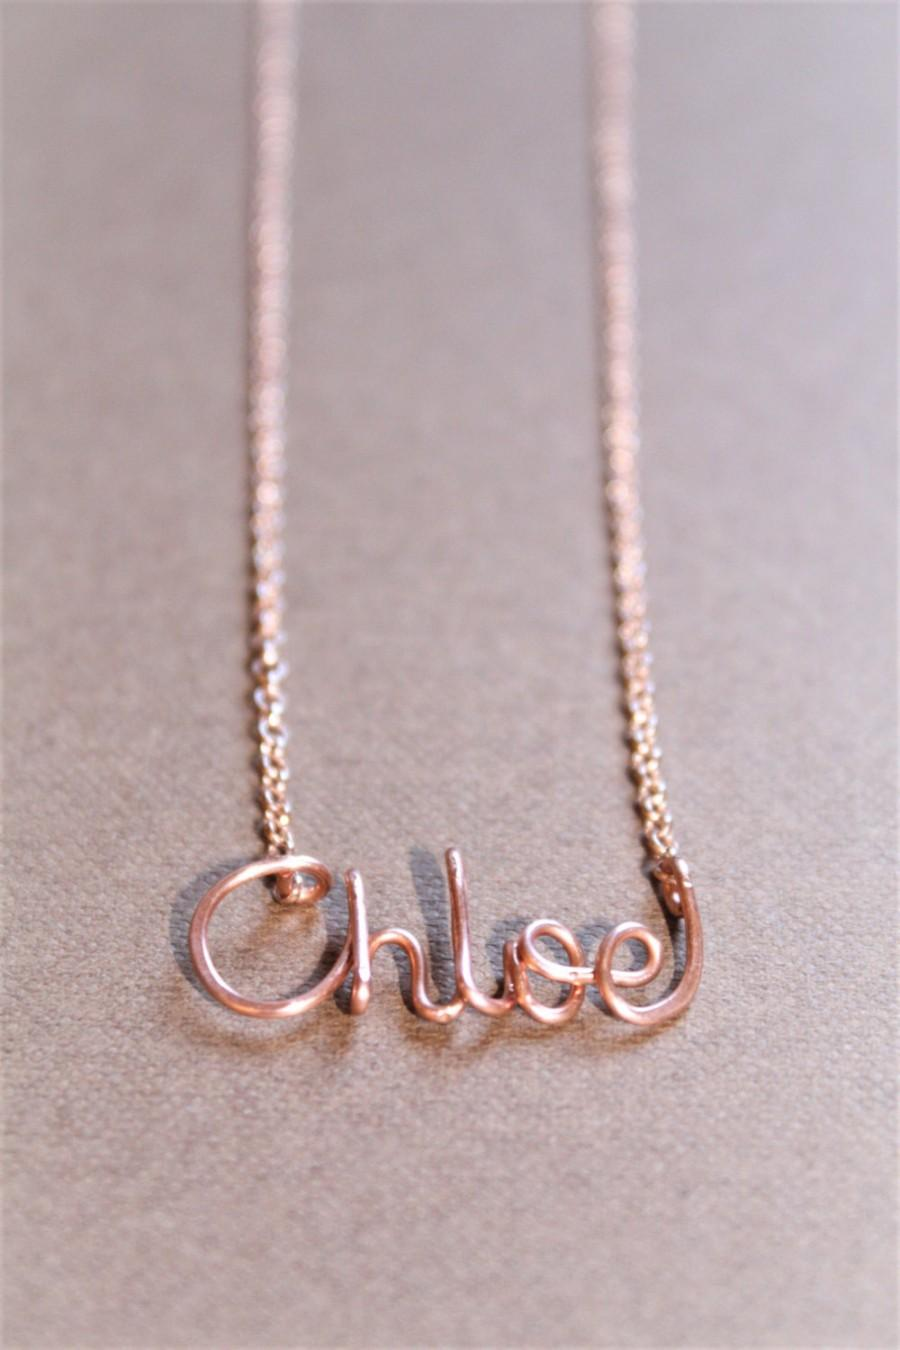 name images charm with necklace pinterest best centimegift children on